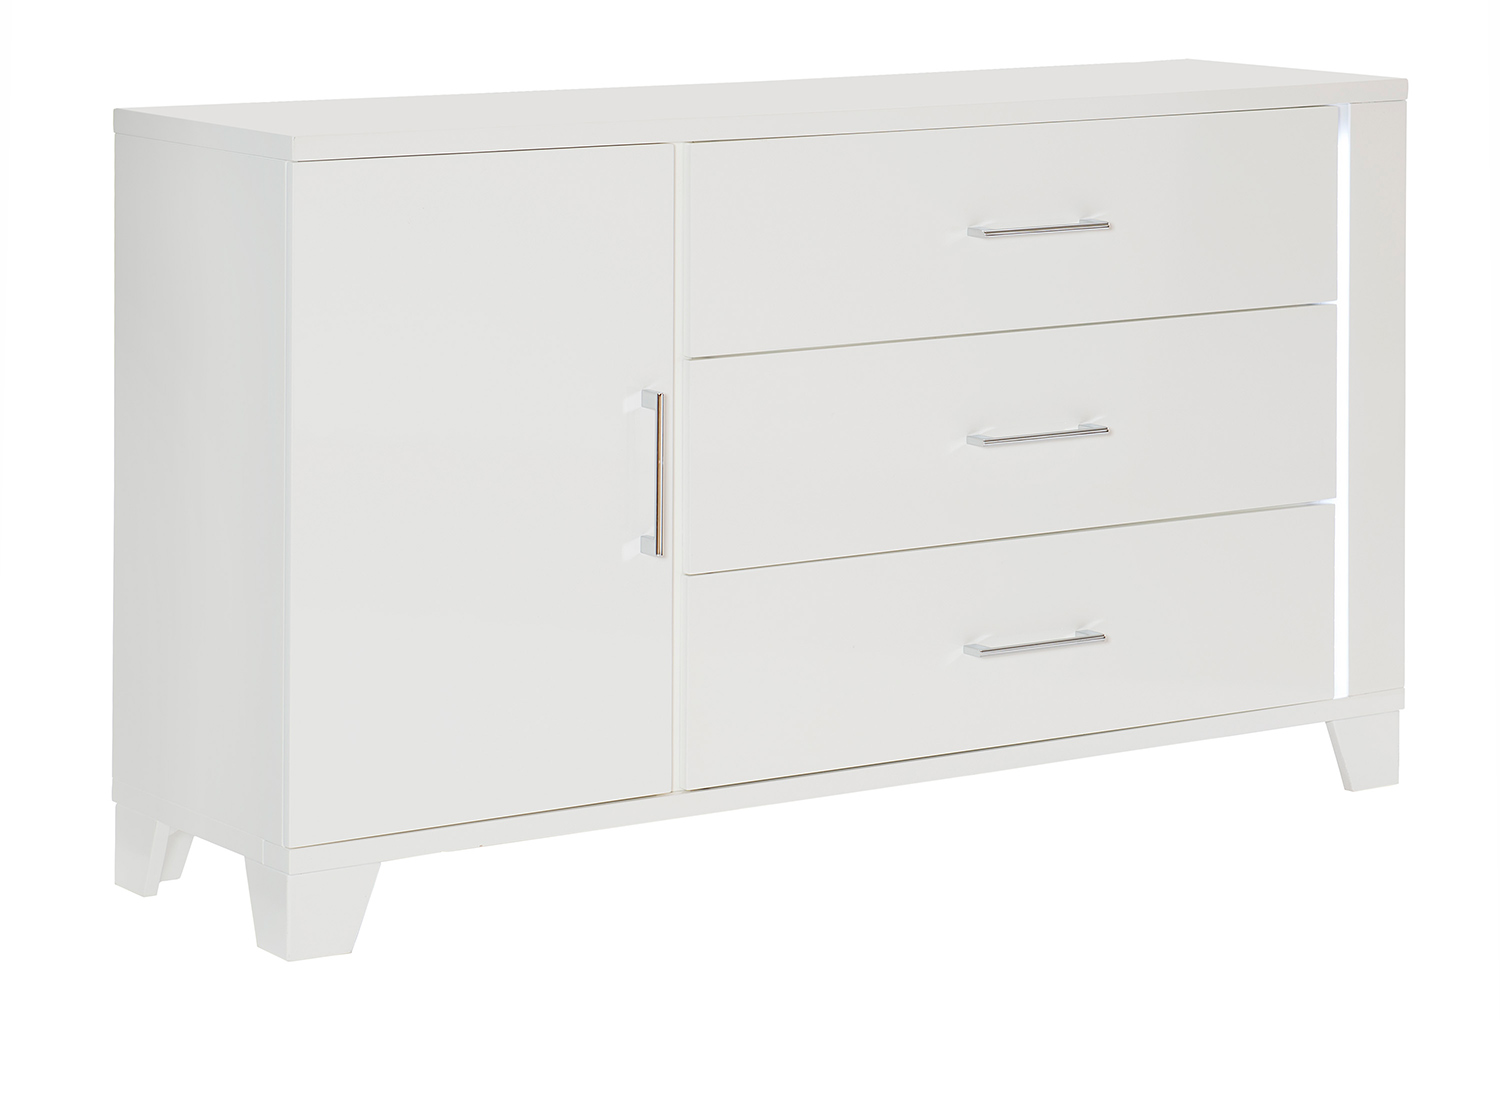 Homelegance Kerren or Keren Dresser with LED Lighting - White High Gloss